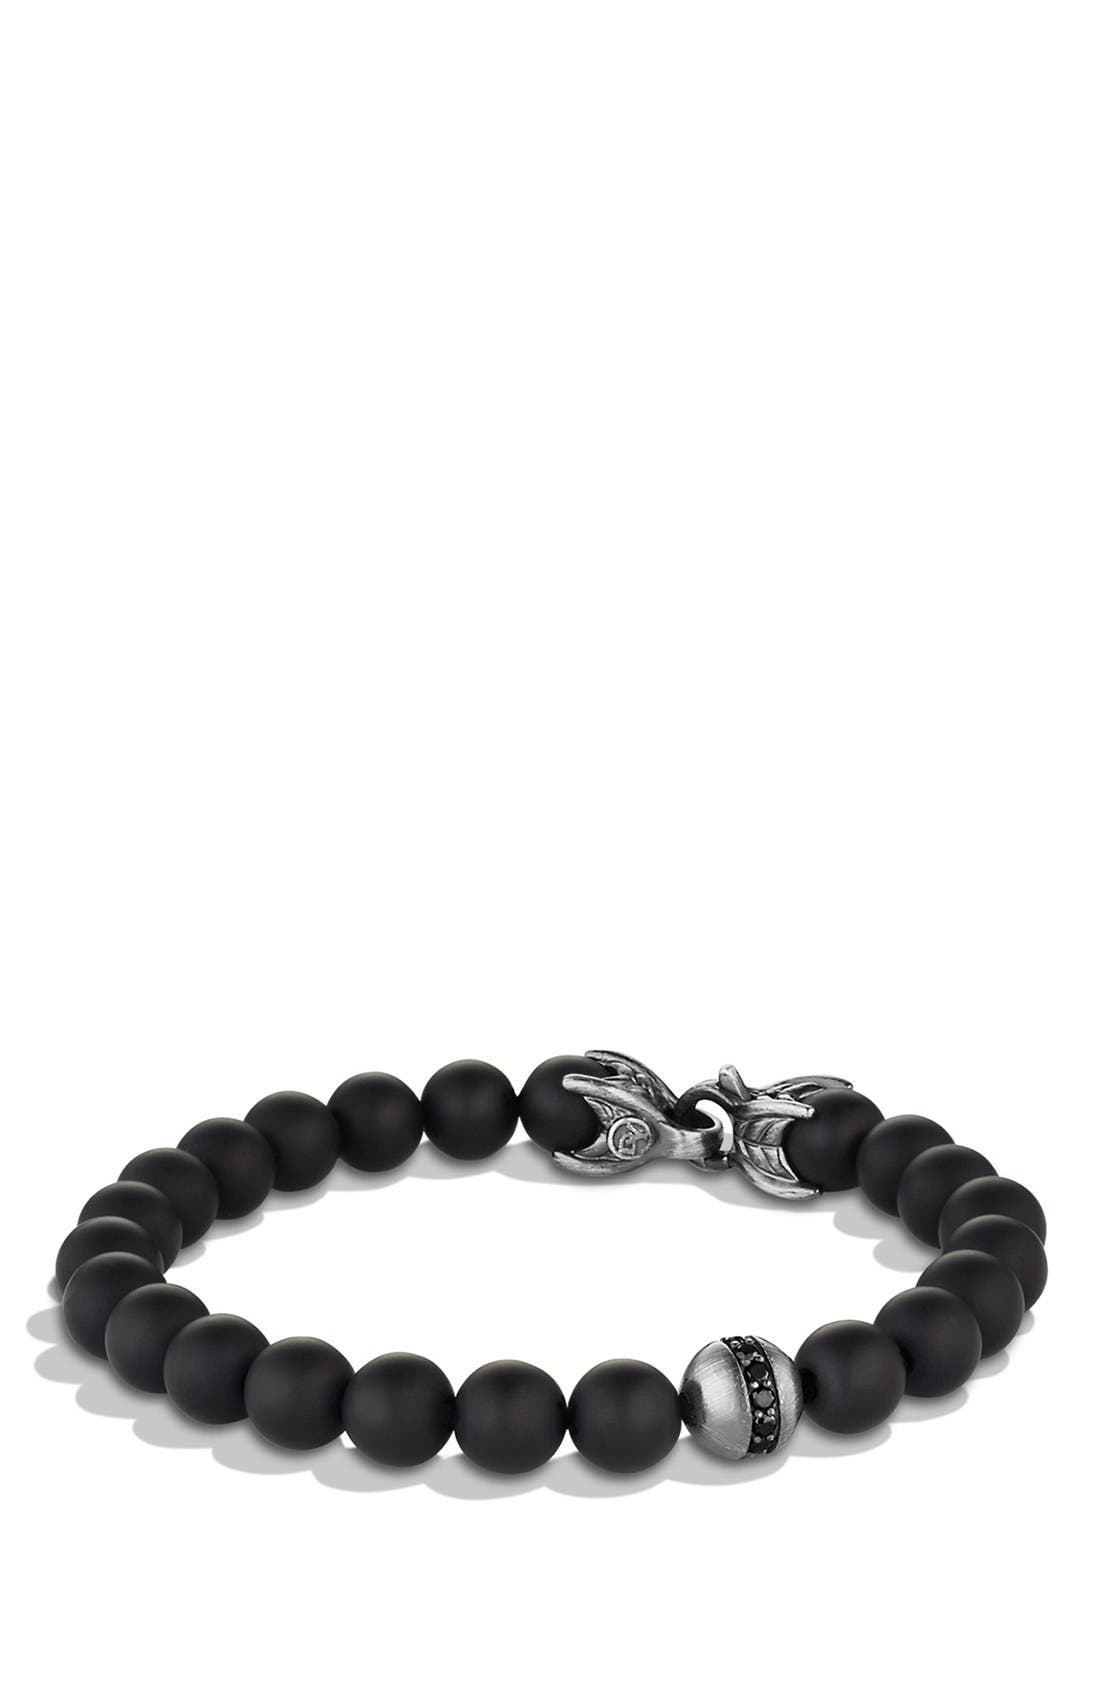 Alternate Image 1 Selected - David Yurman 'Spiritual Beads' Bracelet with Black Onyx and Black Diamonds